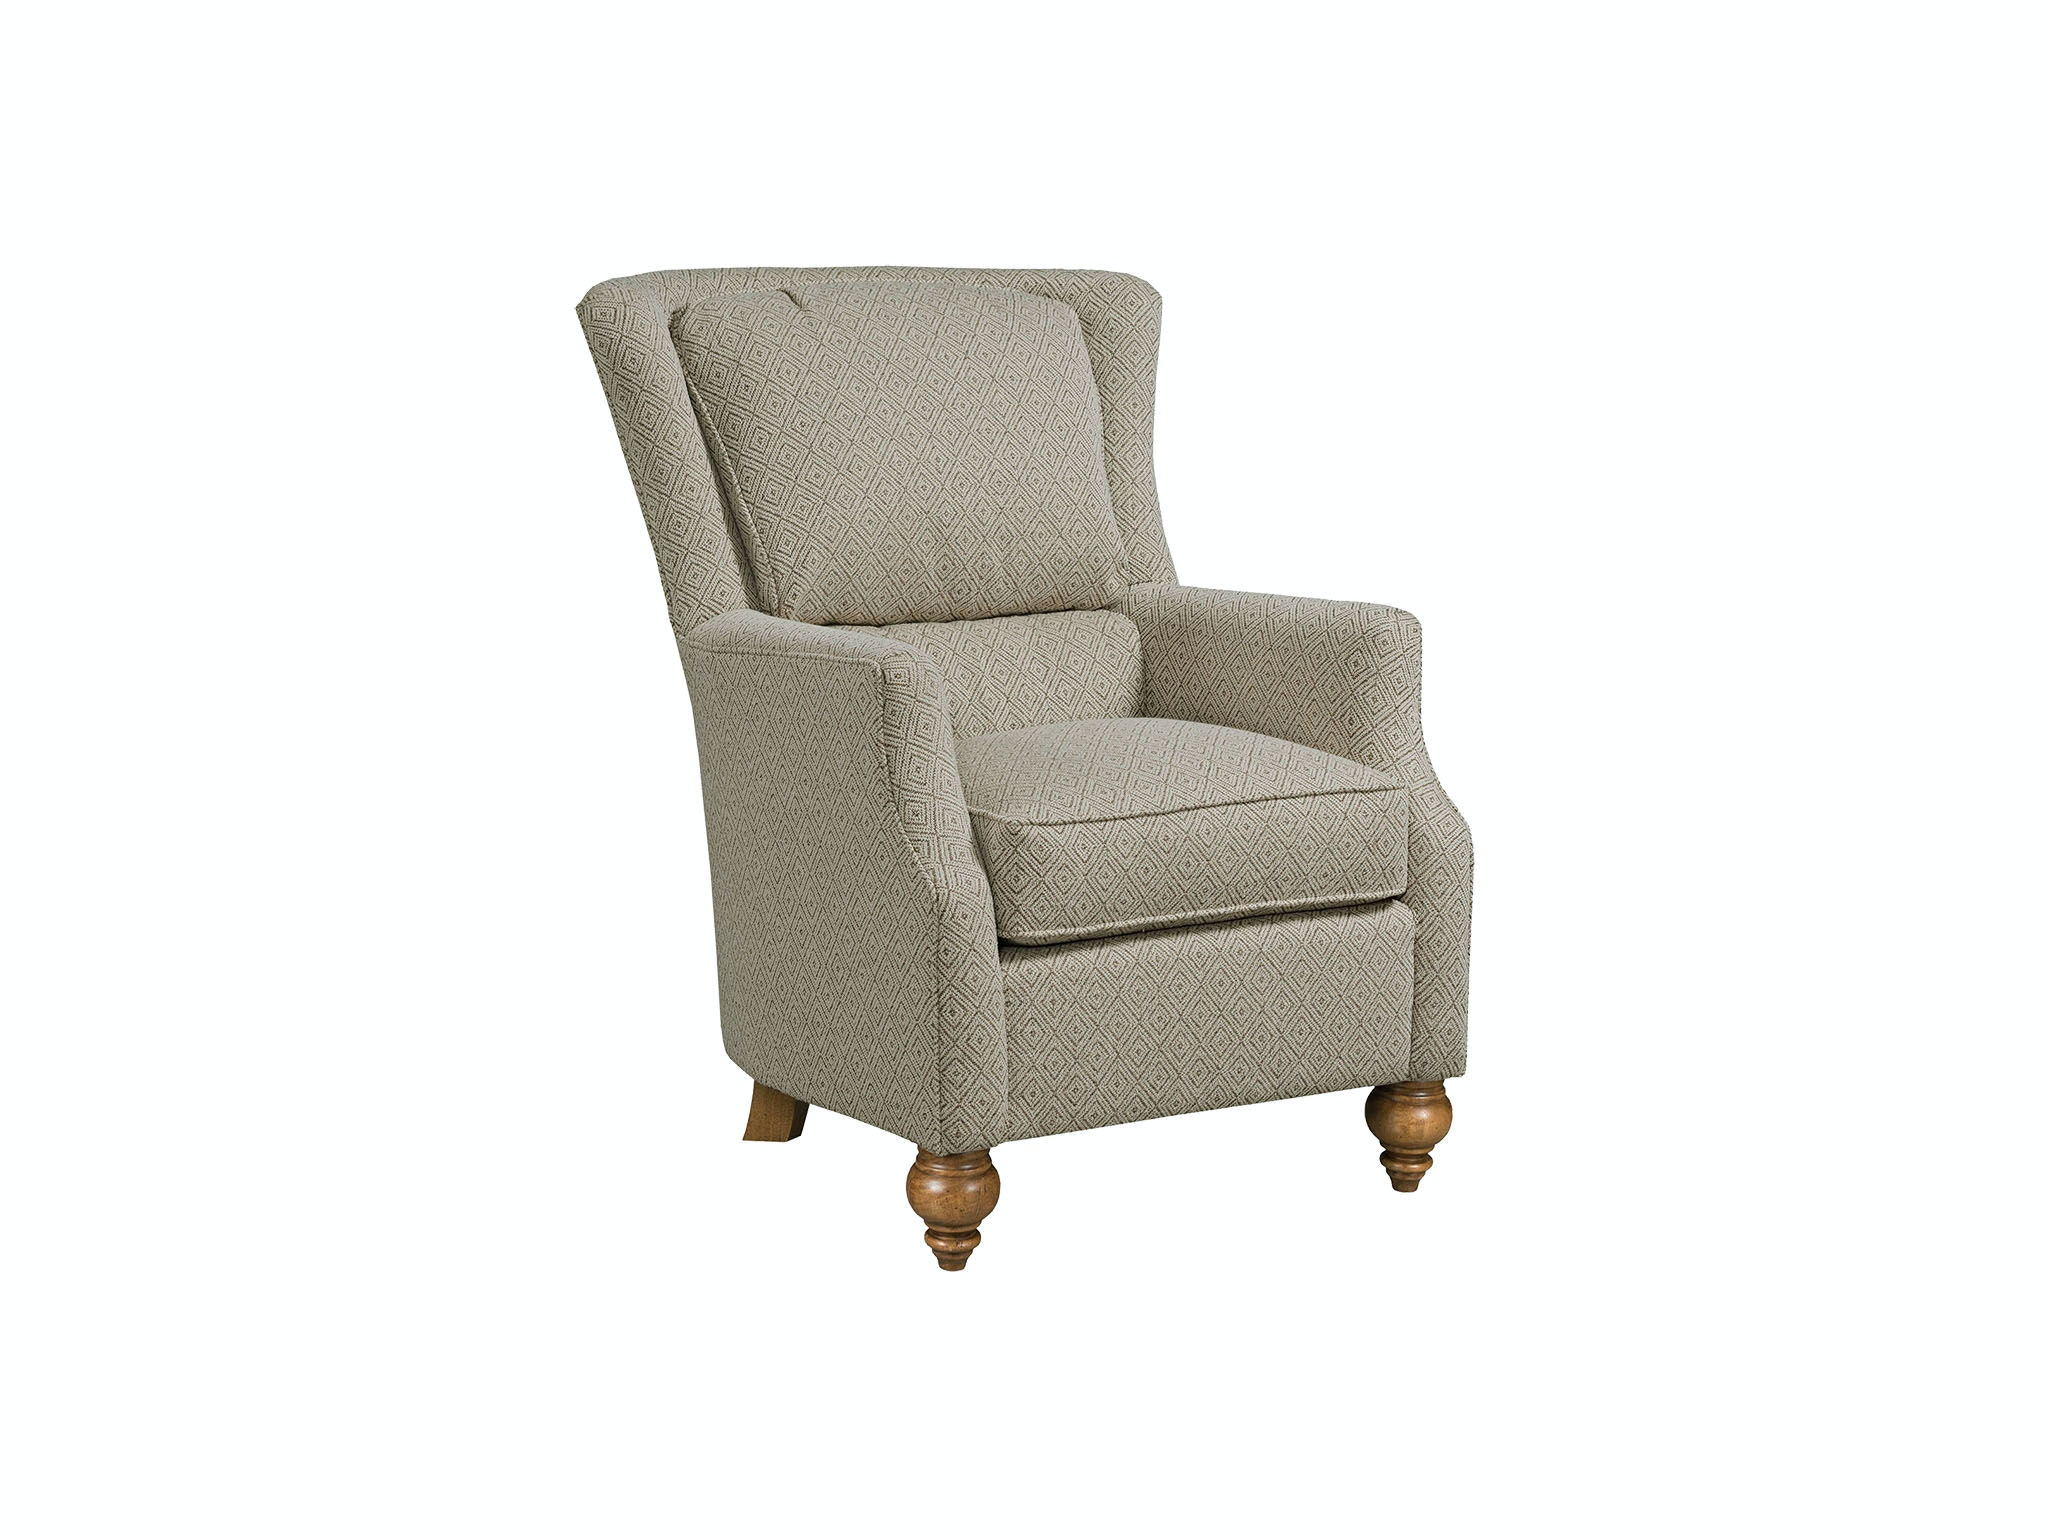 Kincaid Furniture Benjamin Chair 004 00